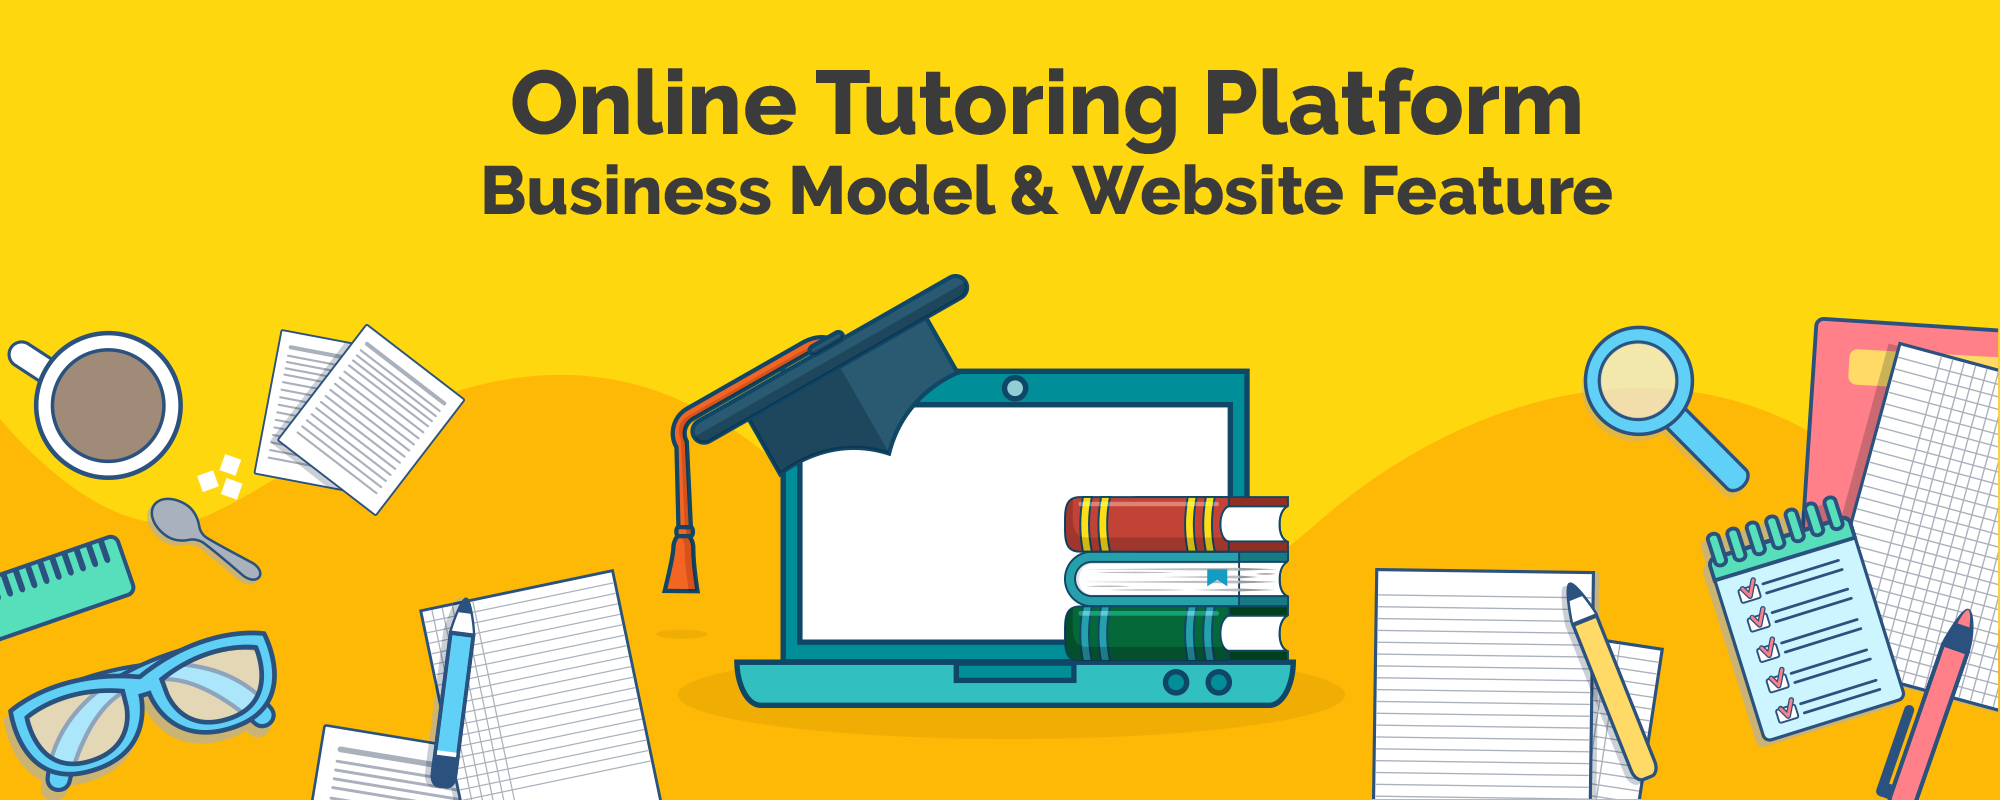 How to Start an Online Tutoring Platform – In-Depth Study of Business Models & Key Features